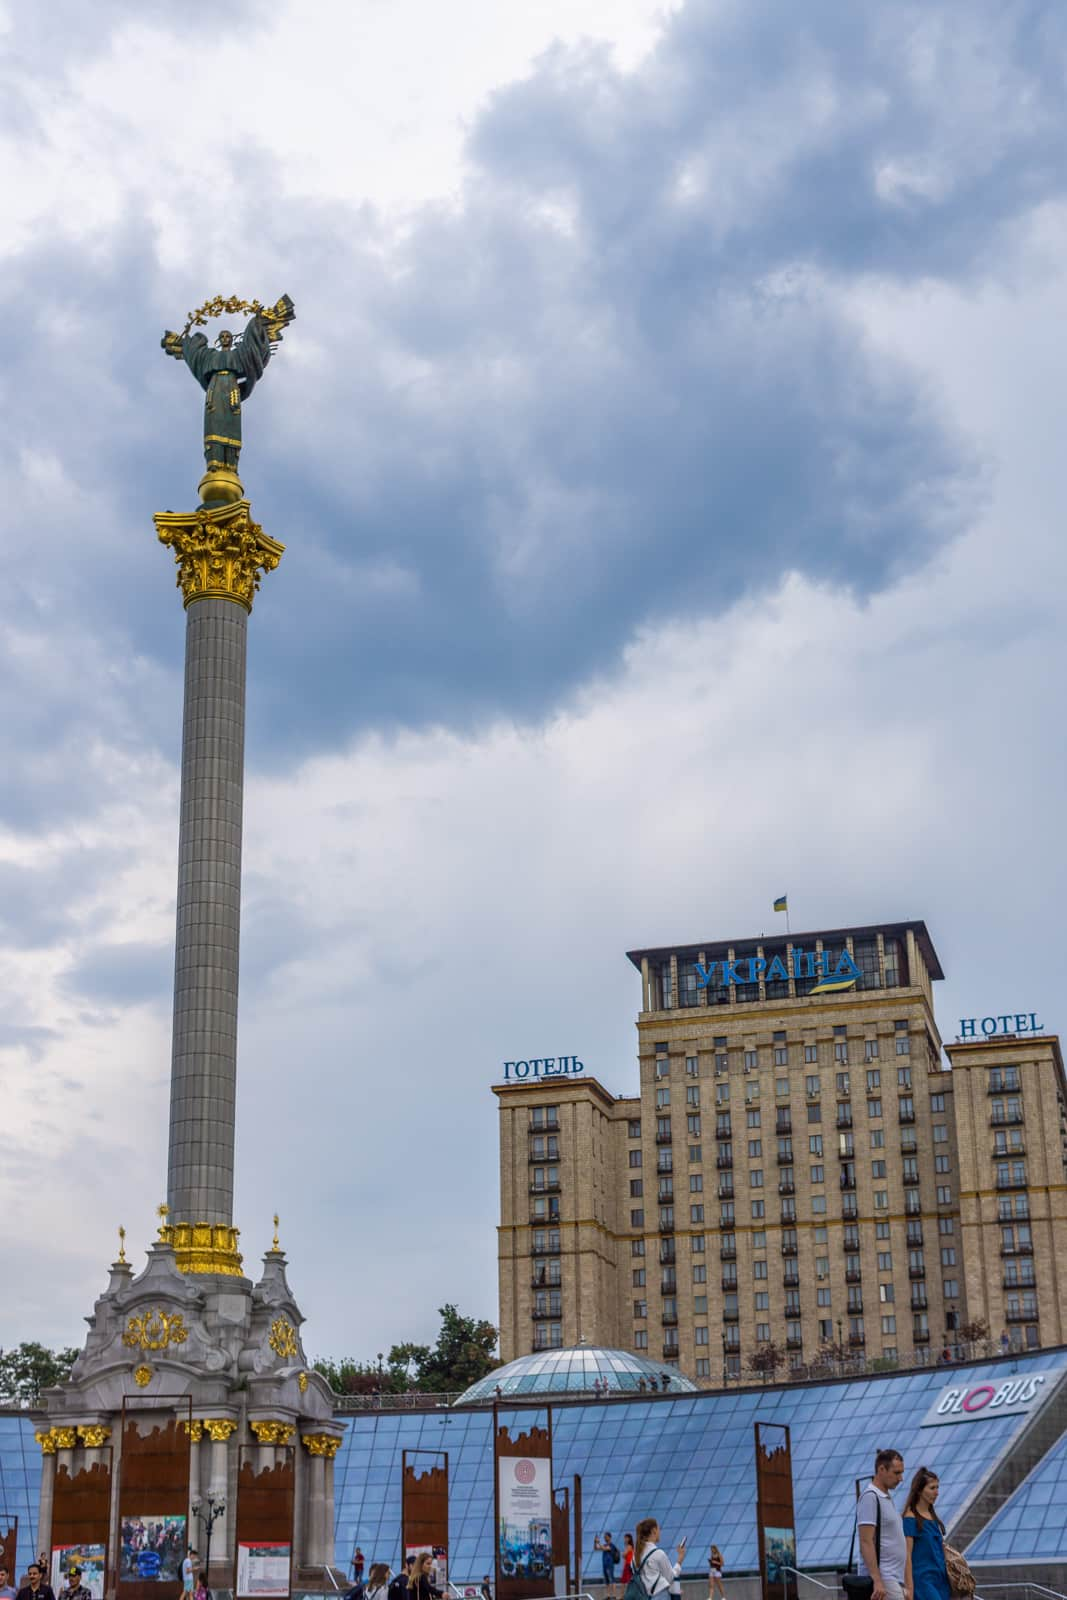 Maidan in Kiev, Ukraine